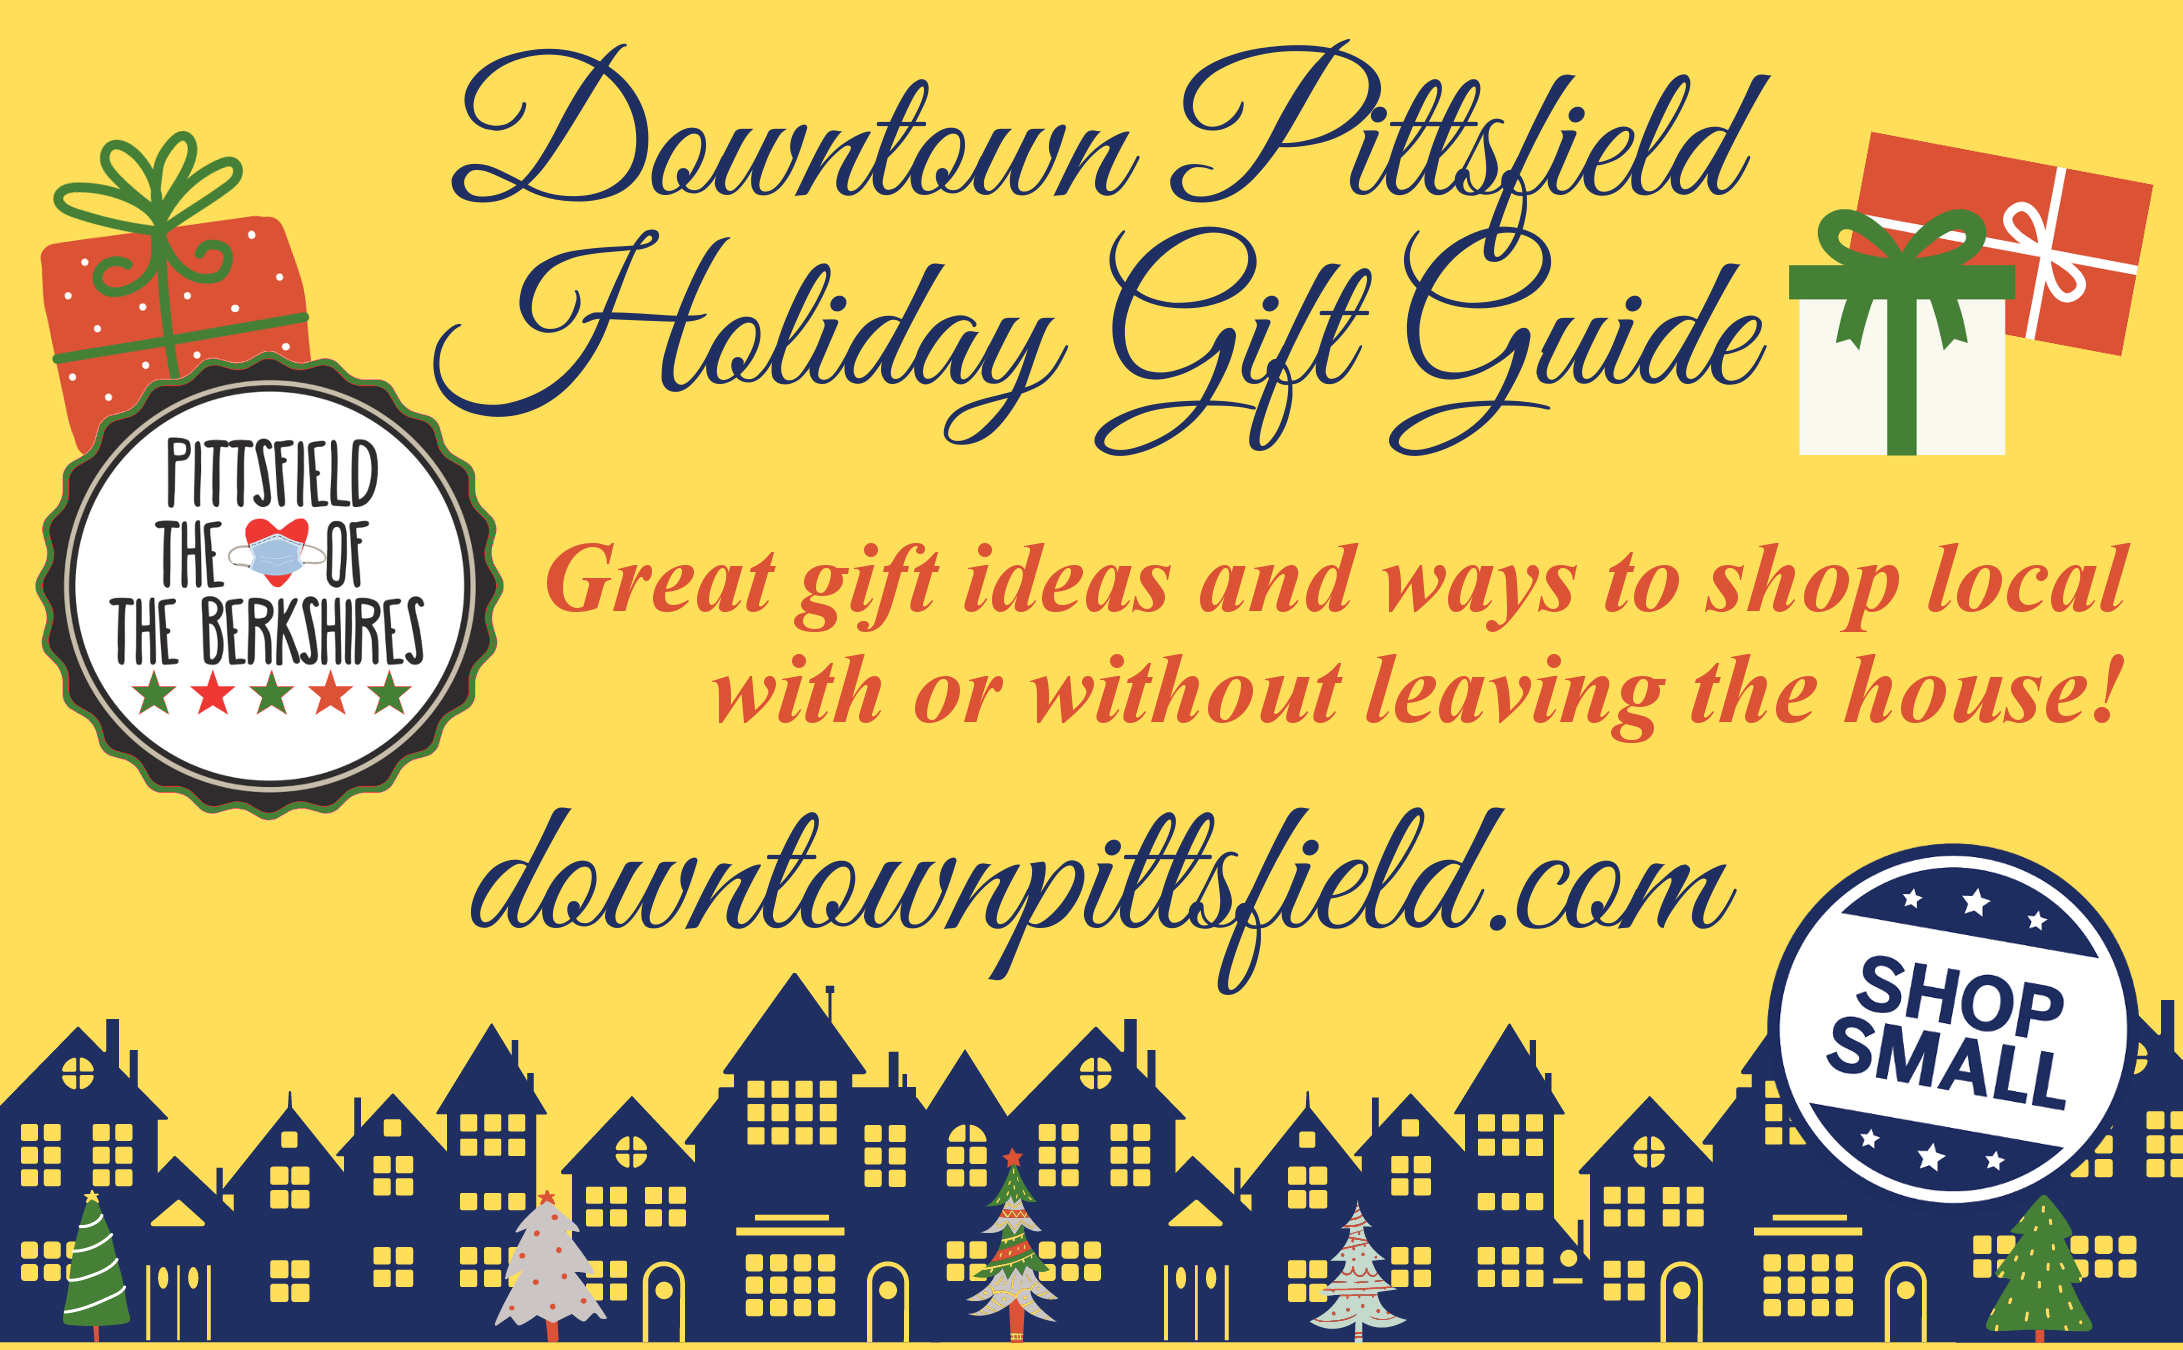 Downtown Pittsfield Holiday Gift Guide Pittsfield MA DPI